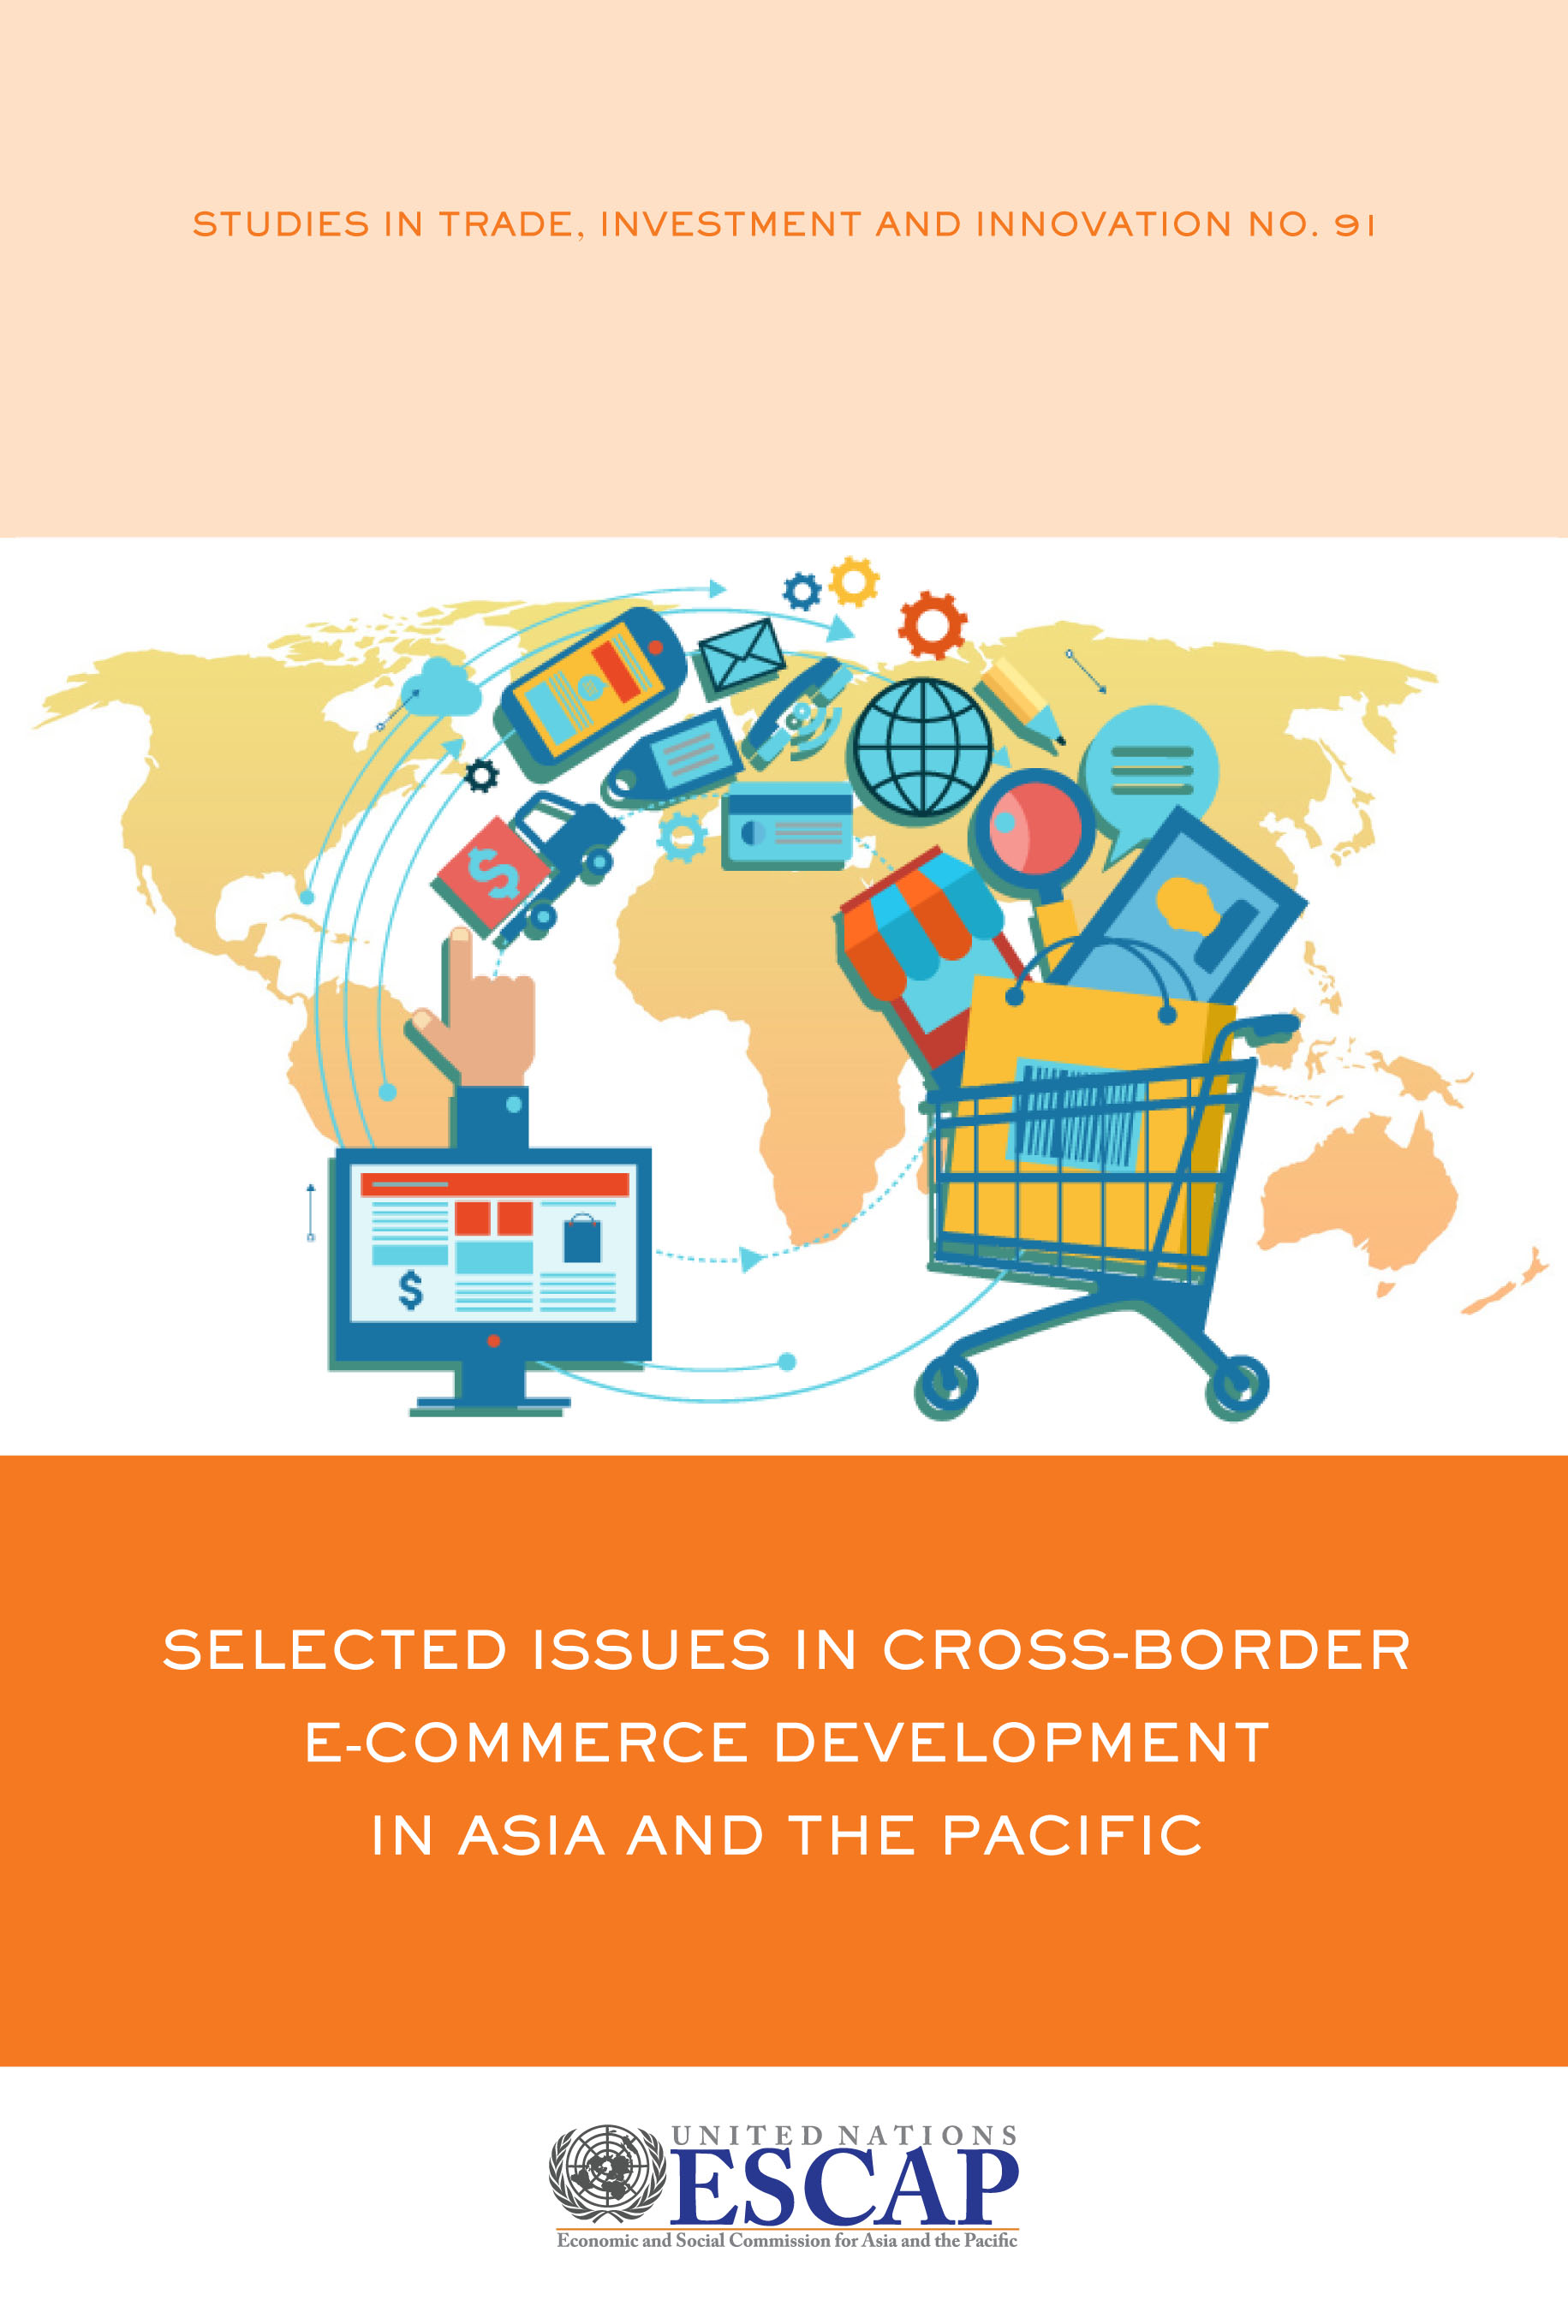 CROSS-BORDER E-COMMERCE DEVEL ASIA